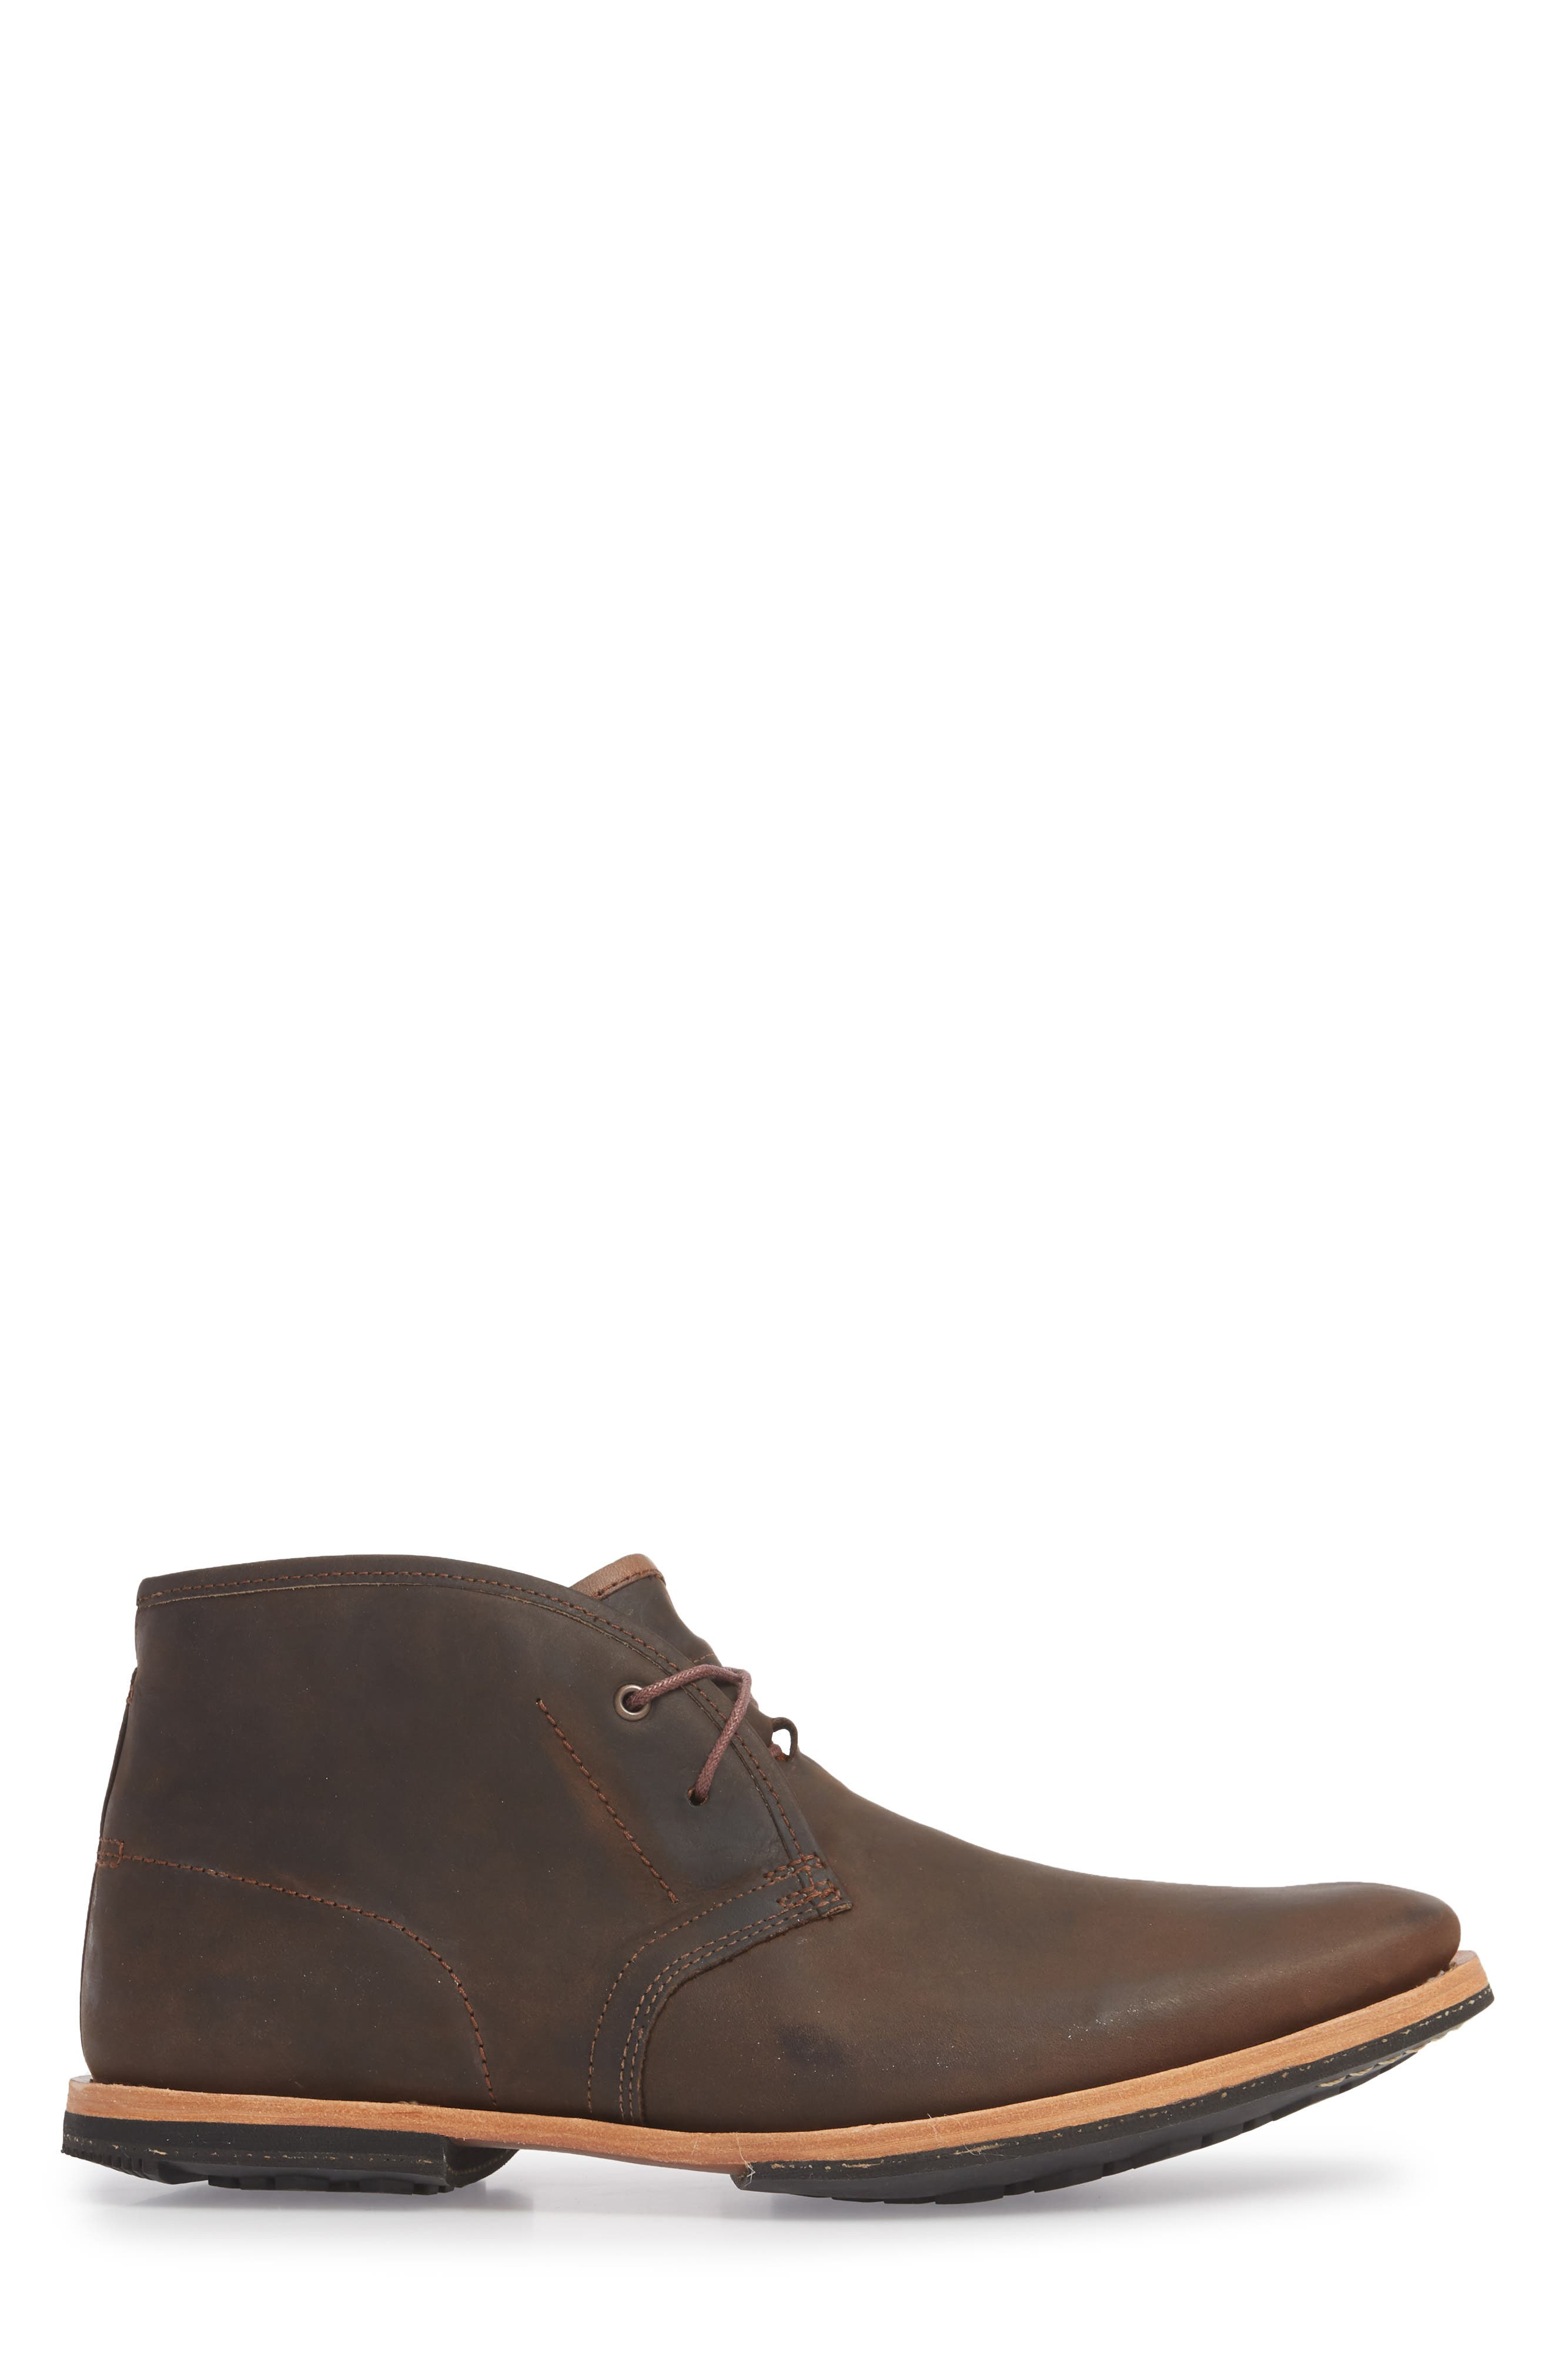 Wodehouse Lost History Chukka Boot,                             Alternate thumbnail 3, color,                             BROWN LEATHER